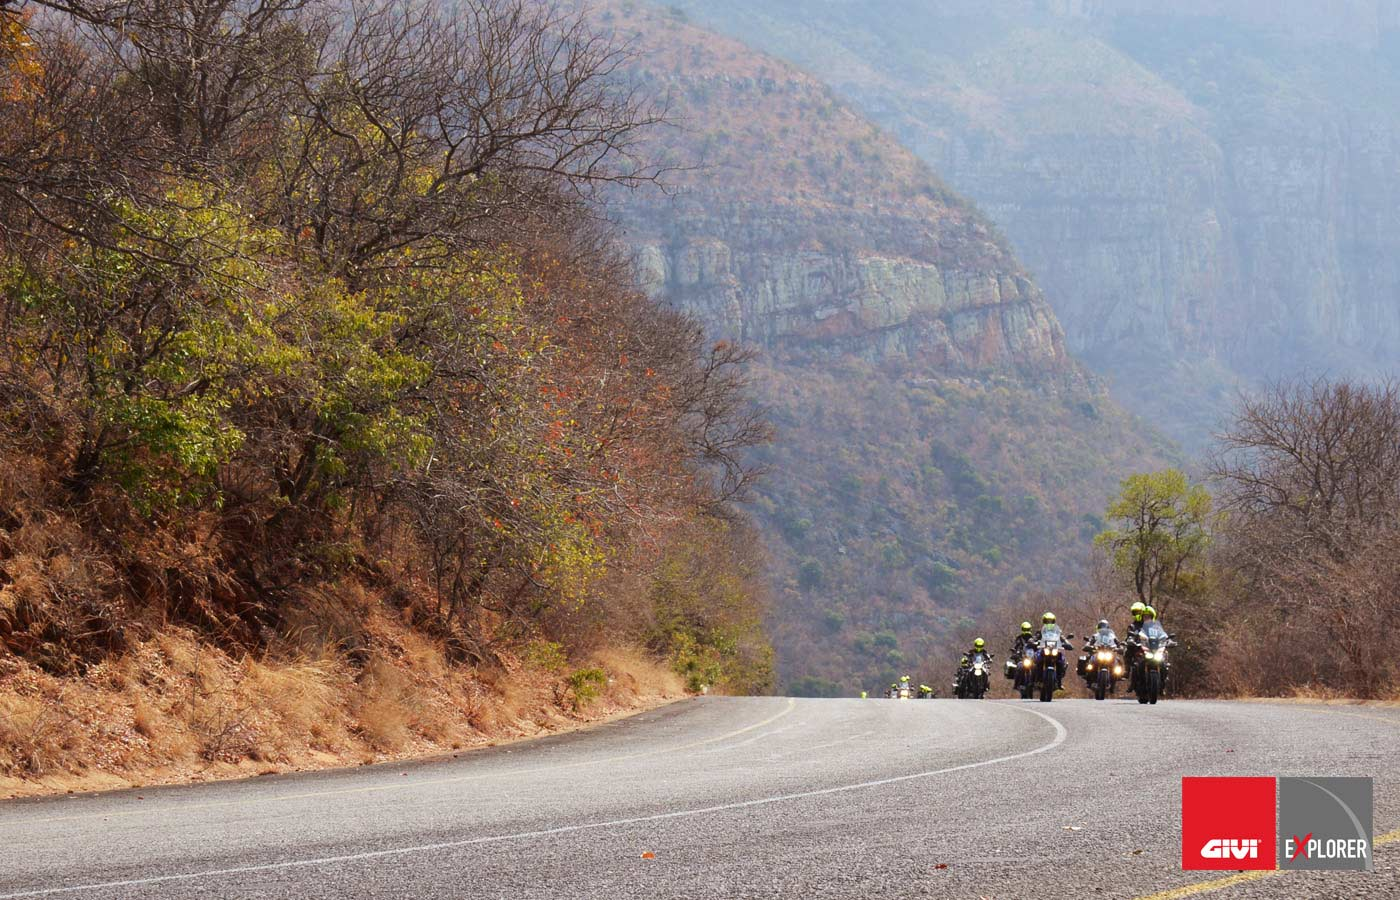 WILDERNESS ADVENTURE SOUTH AFRICA - Givi Explorer